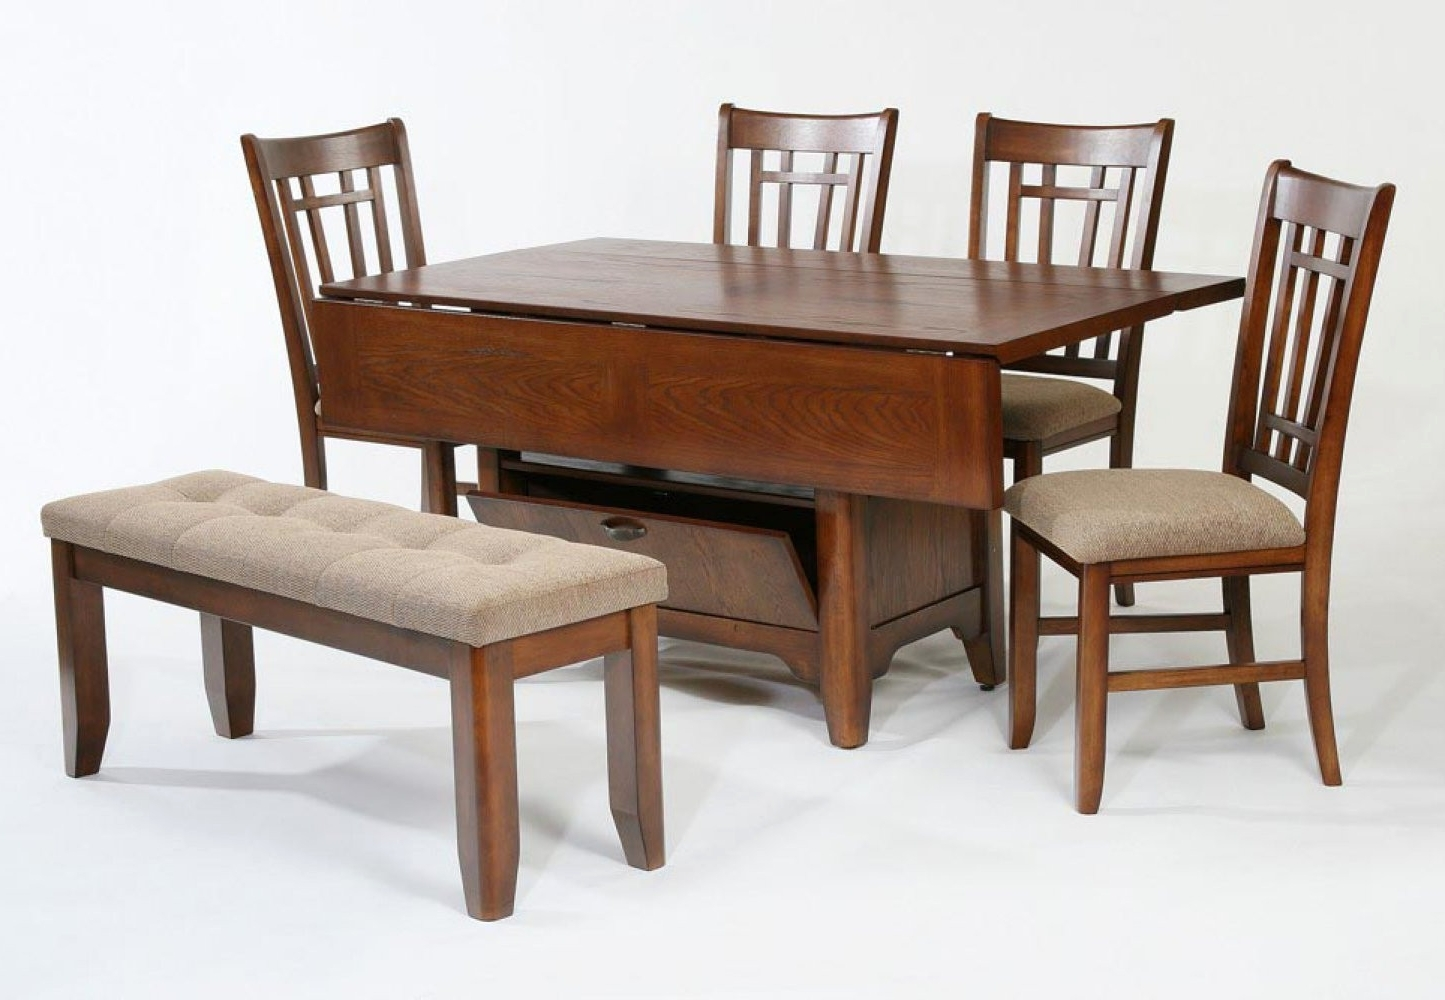 Cool Magnolia Home Dining Room Sawbuck Dining Table Setting Db Table With Well Known Magnolia Home Sawbuck Dining Tables (View 1 of 25)